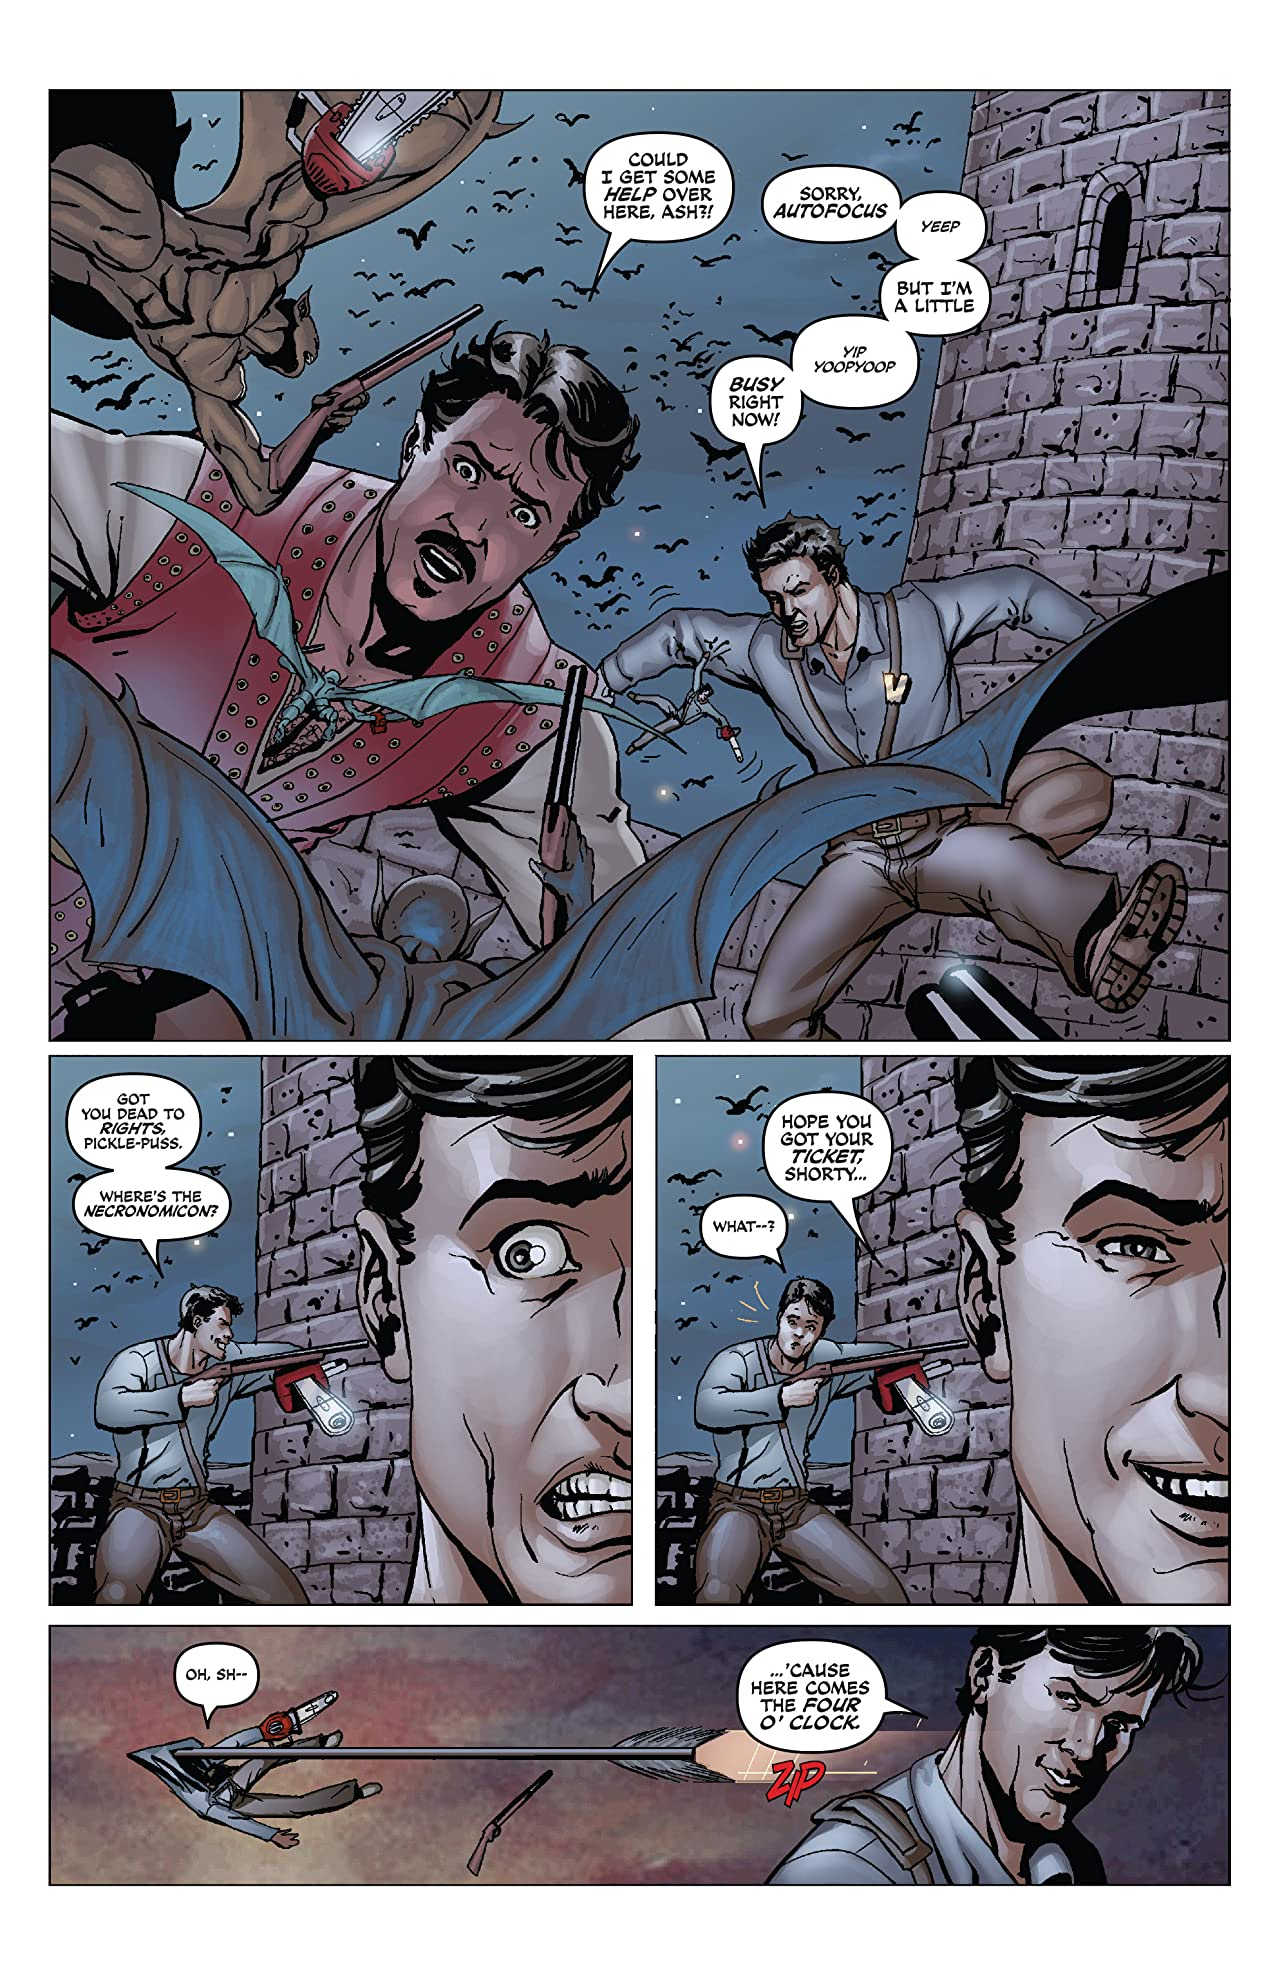 Army of Darkness/Xena: Warrior Princess - Why Not? #4 (of 4)